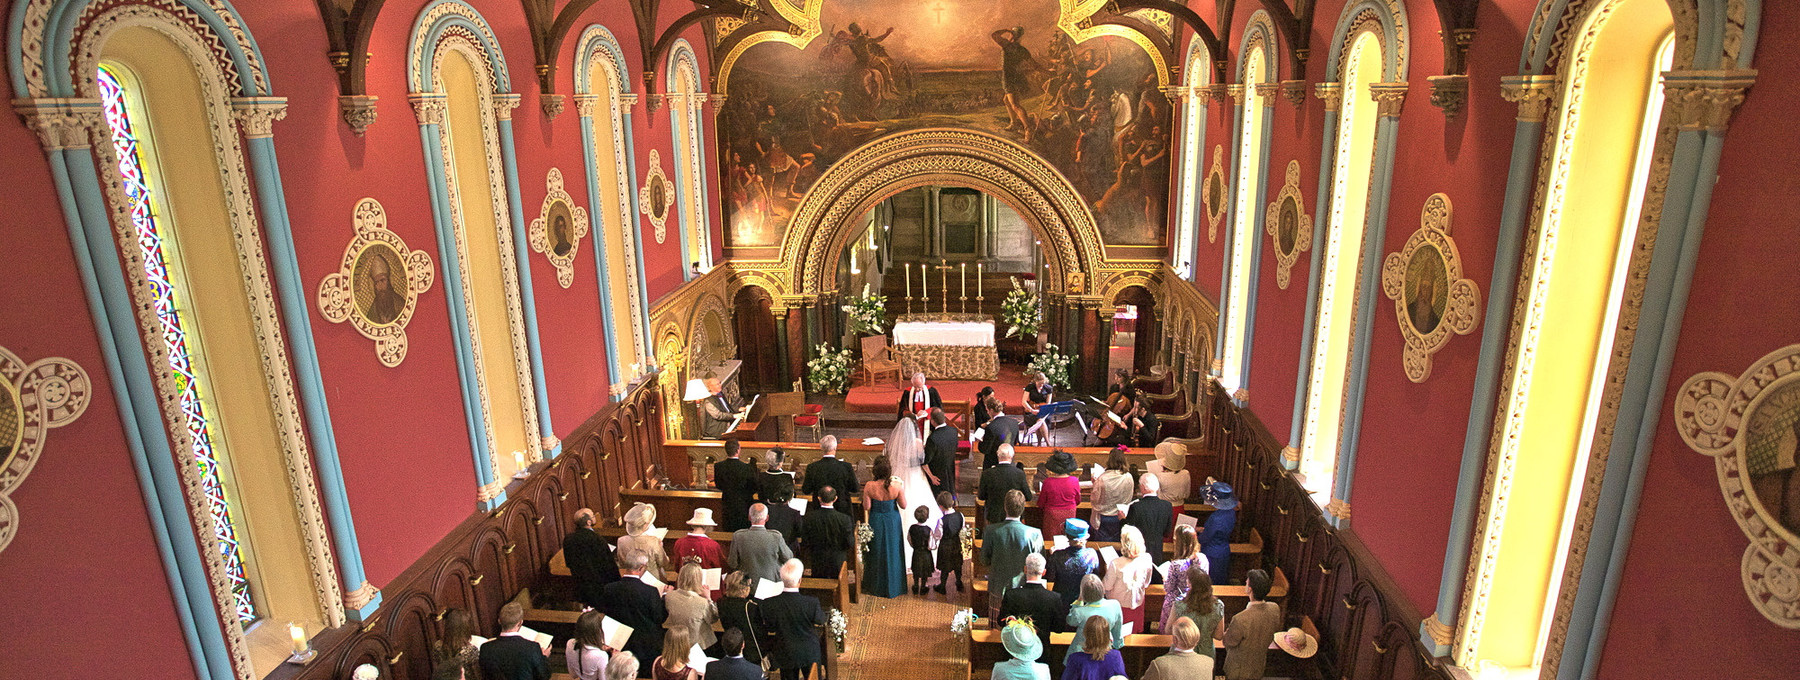 Wedding ceremony at Murthly estate chapel - Wedding vows are made in the the stunning chapel at Murthly Castle (© Nigel Lumsden)